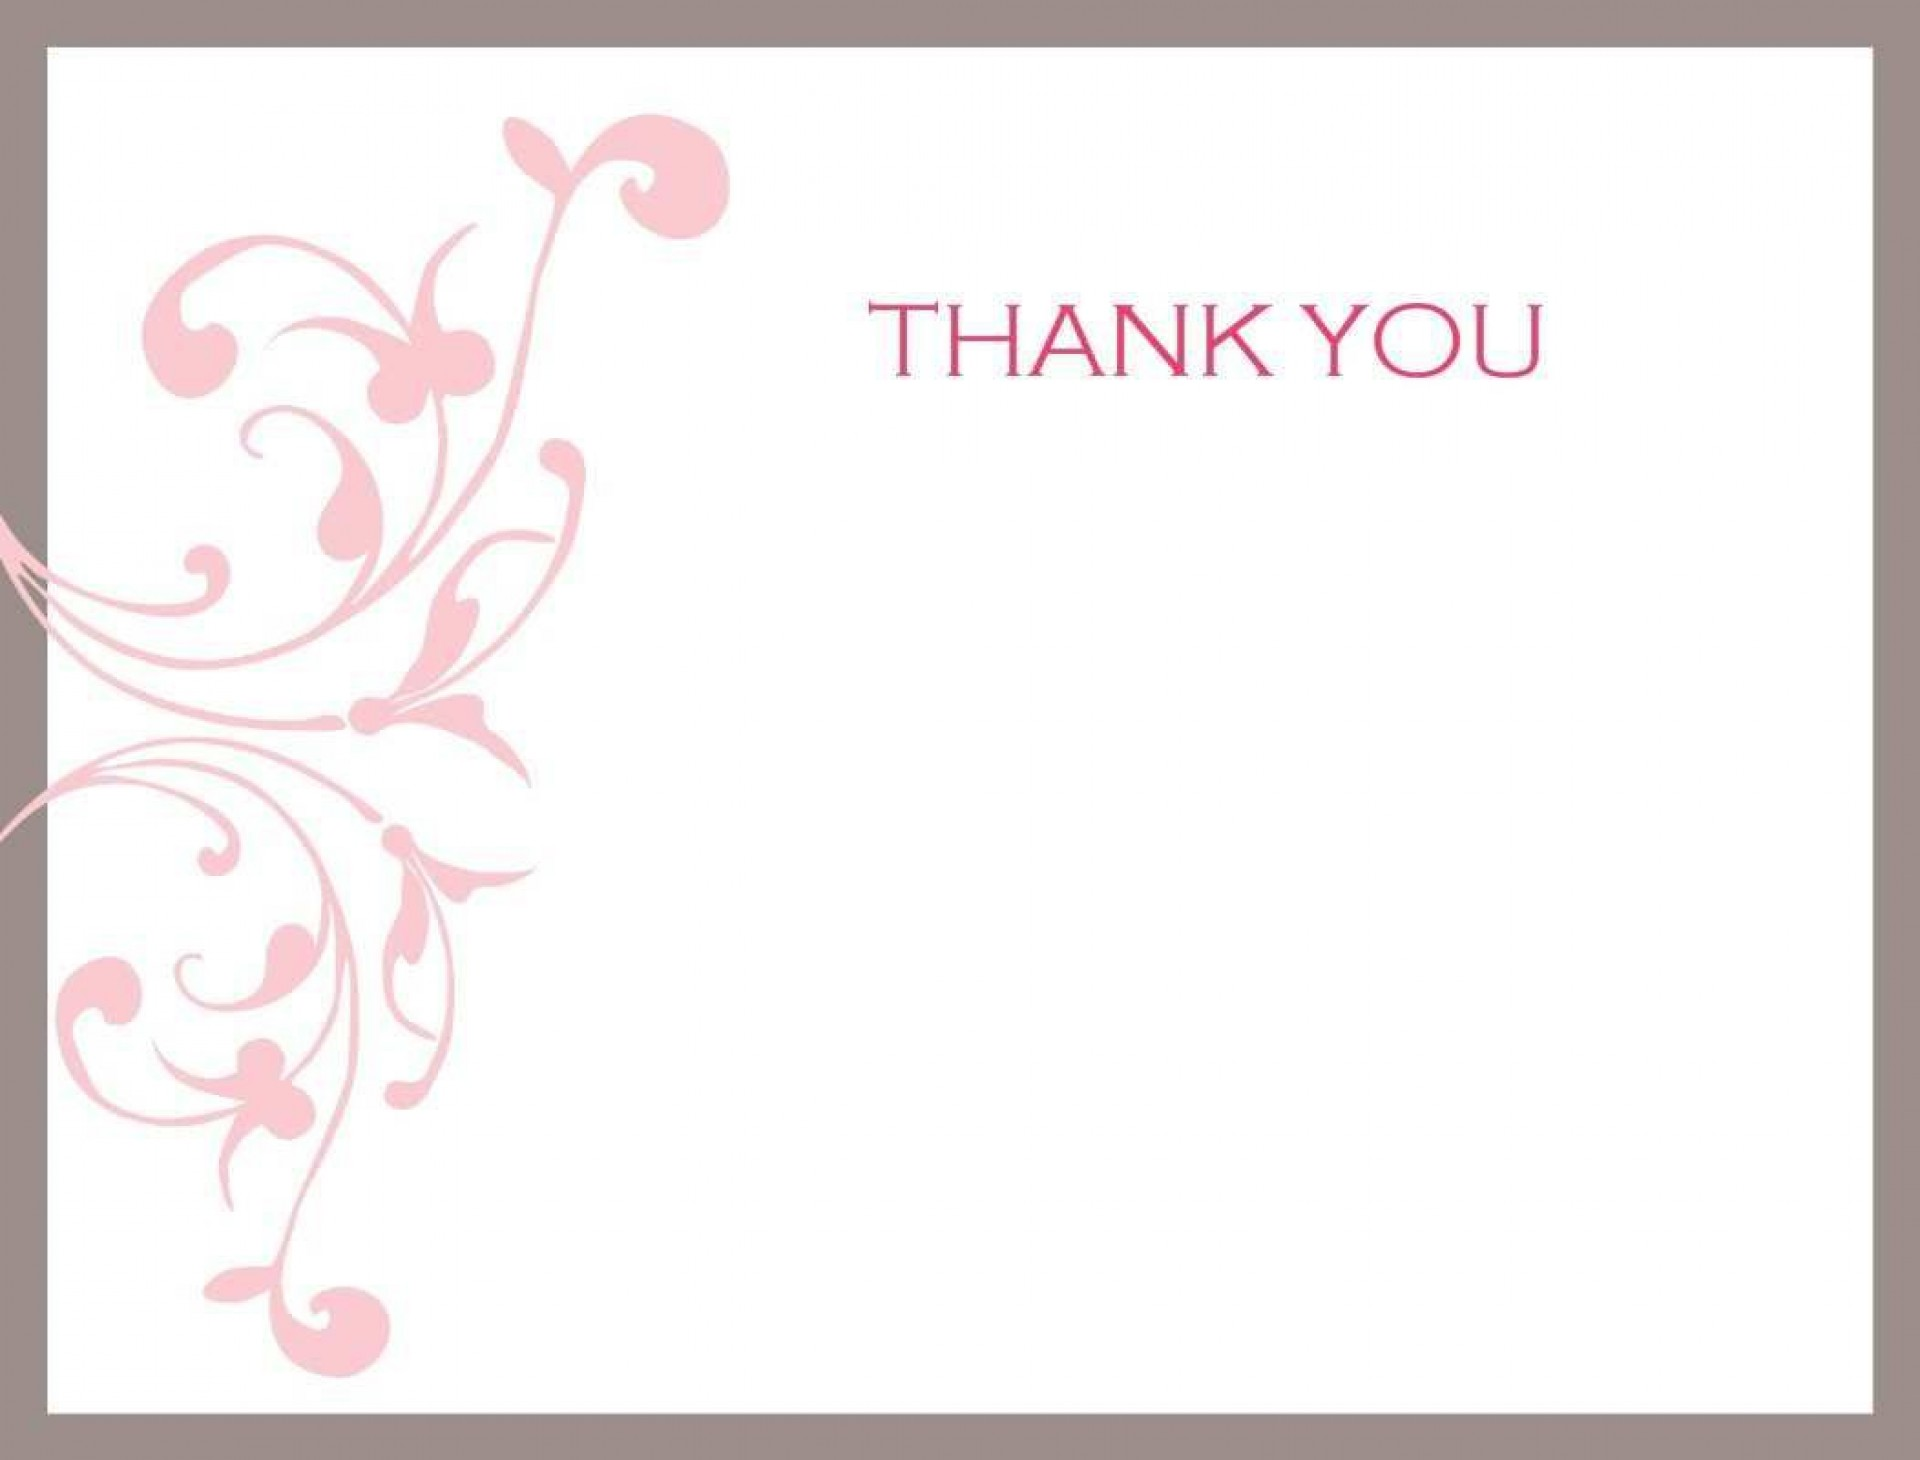 002 Impressive Thank You Card Template Photo  Wedding Busines Word Free1920